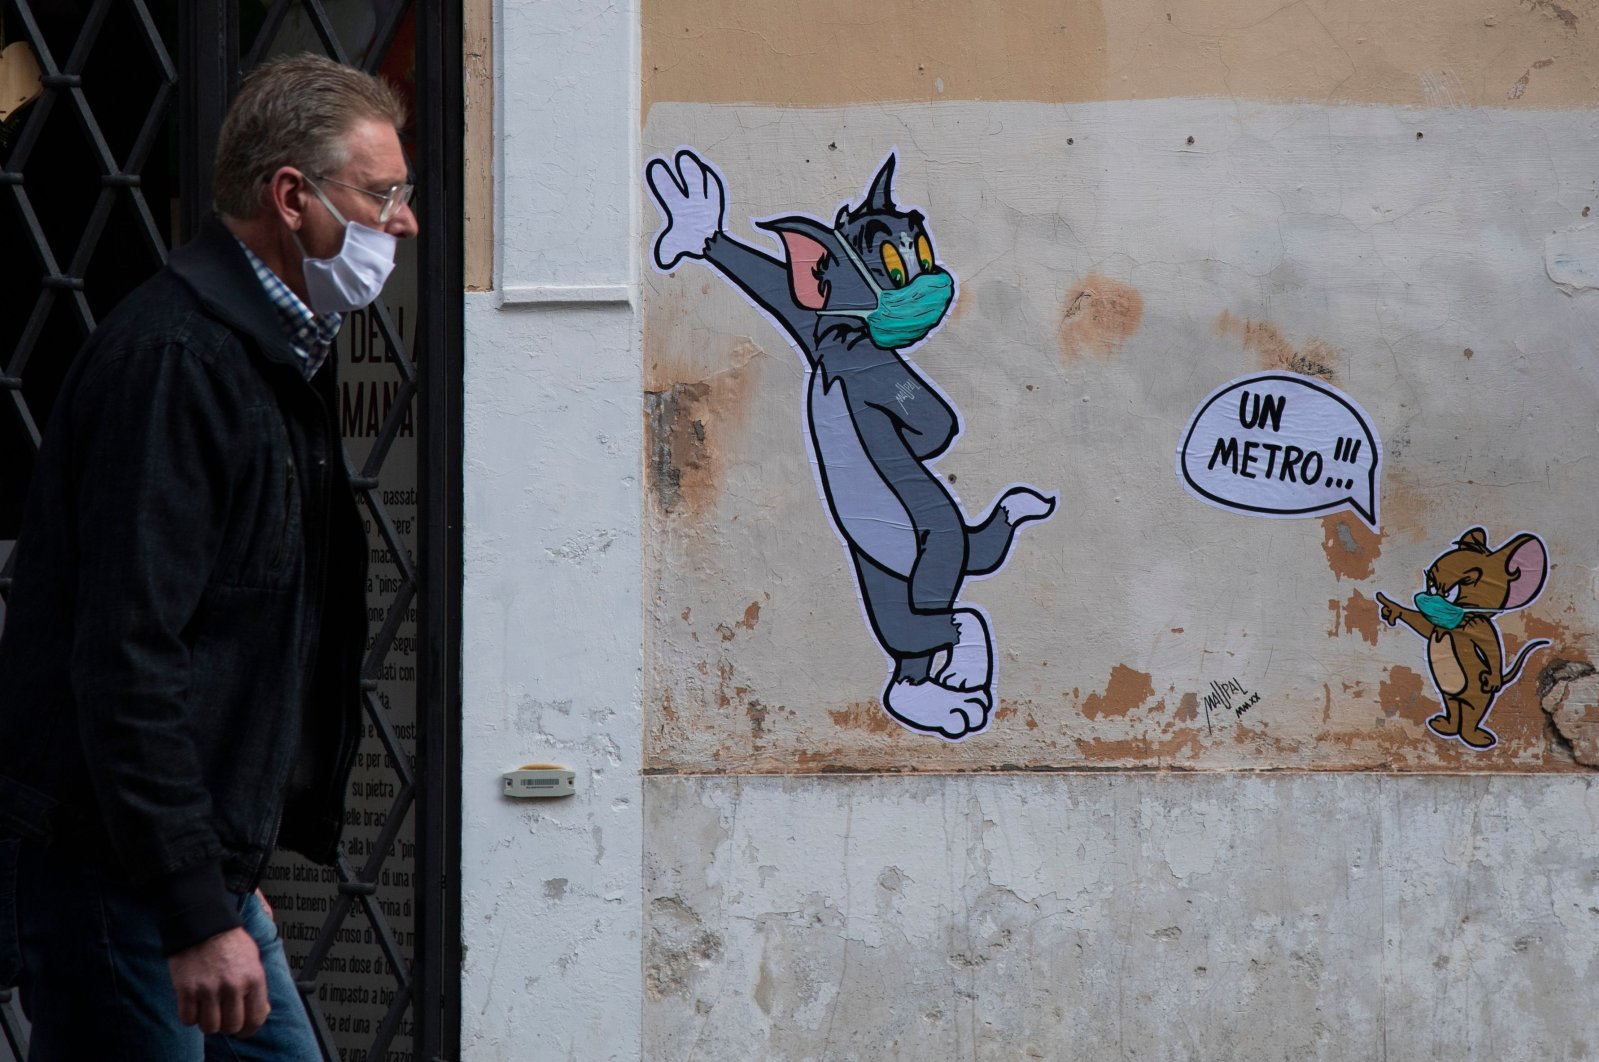 A man wearing a mask to protect against the coronavirus spread walks past a mural in Rome, April 29, 2020. (AFP Photo)